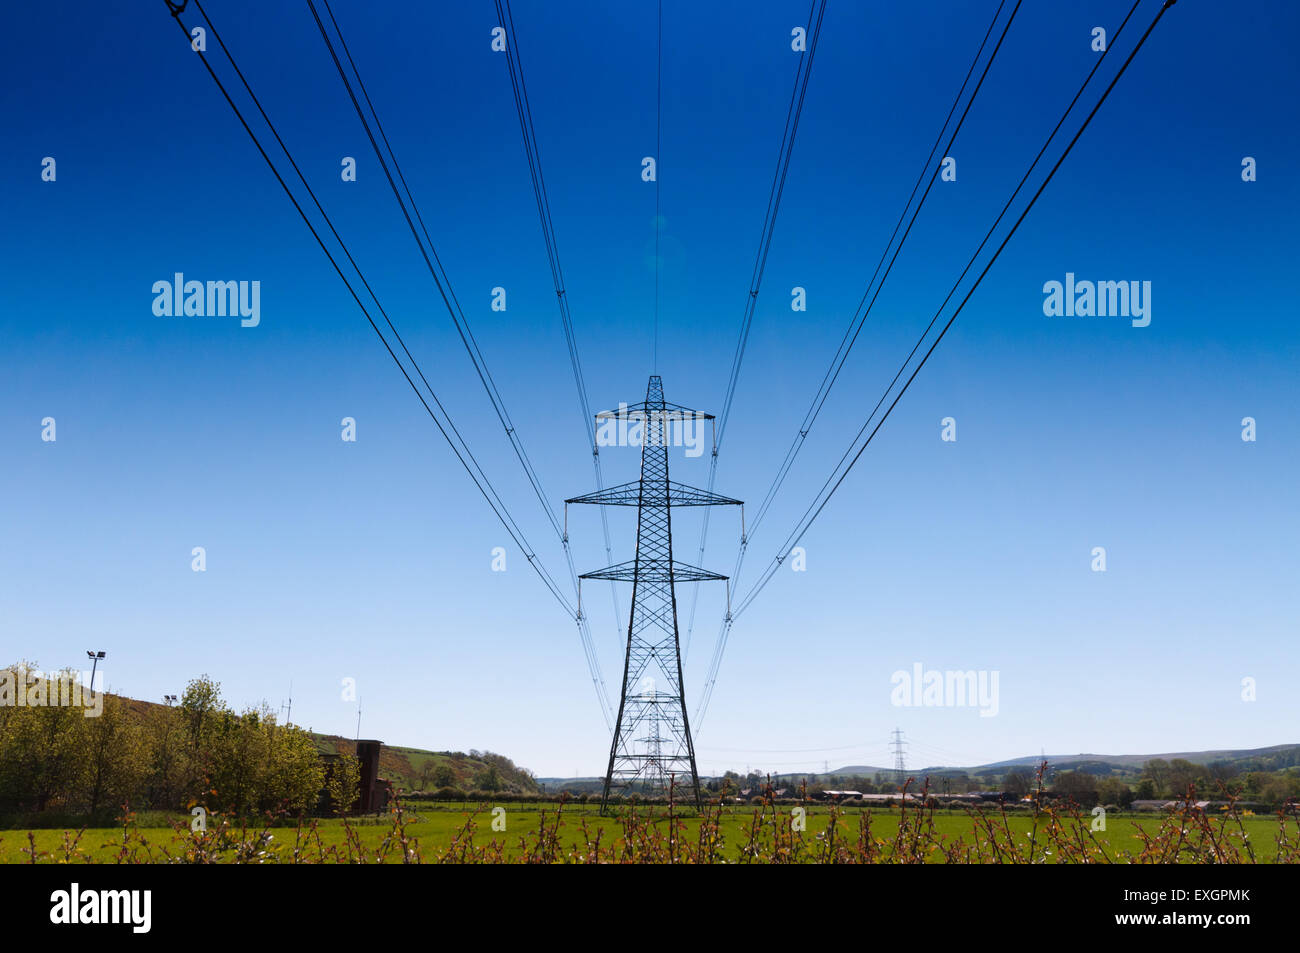 Power lines part of the national grid - Stock Image